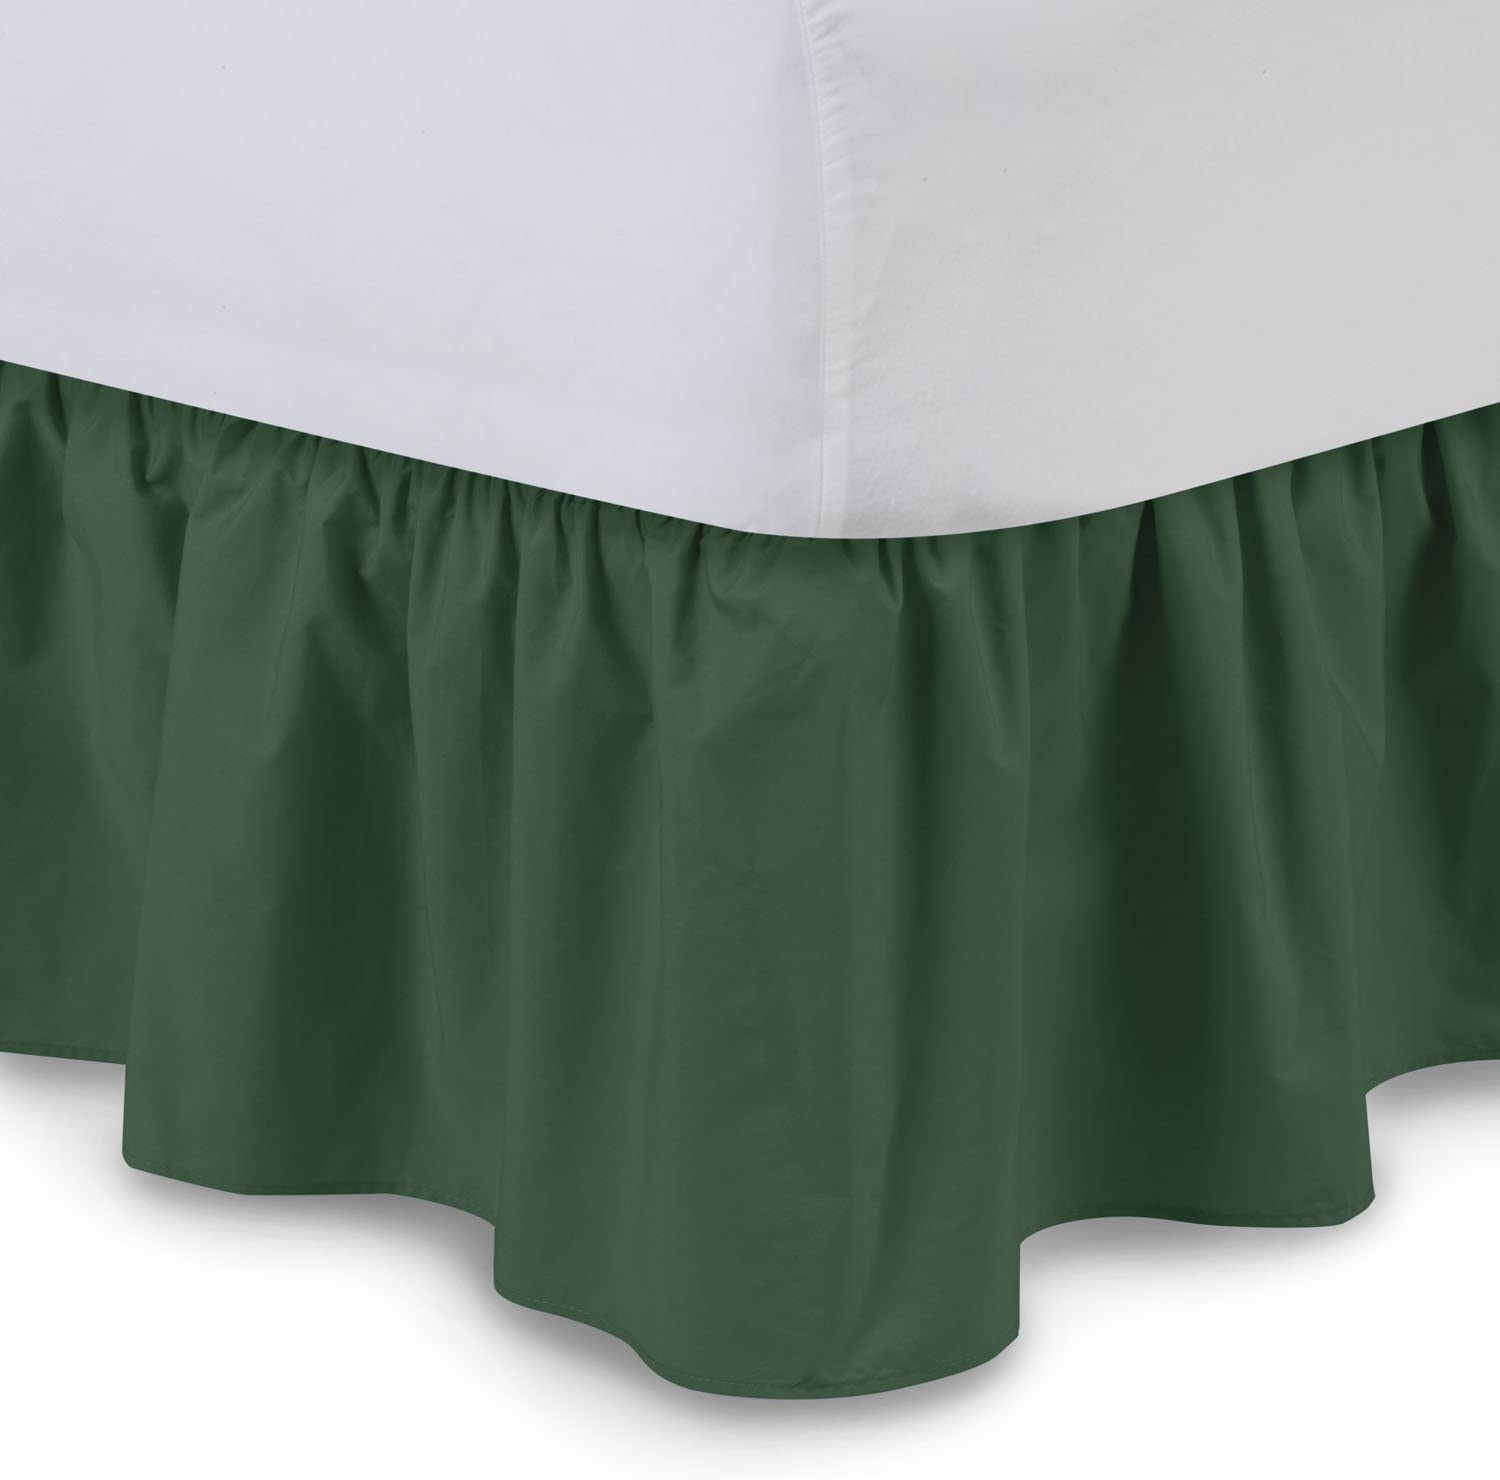 Ruffled Bed Skirt (Twin, Hunter) 21 Inch Drop Bedskirt with Platform, Wrinkle and Fade Resistant, Available in All Bed Sizes and 16 Colors - Blissford